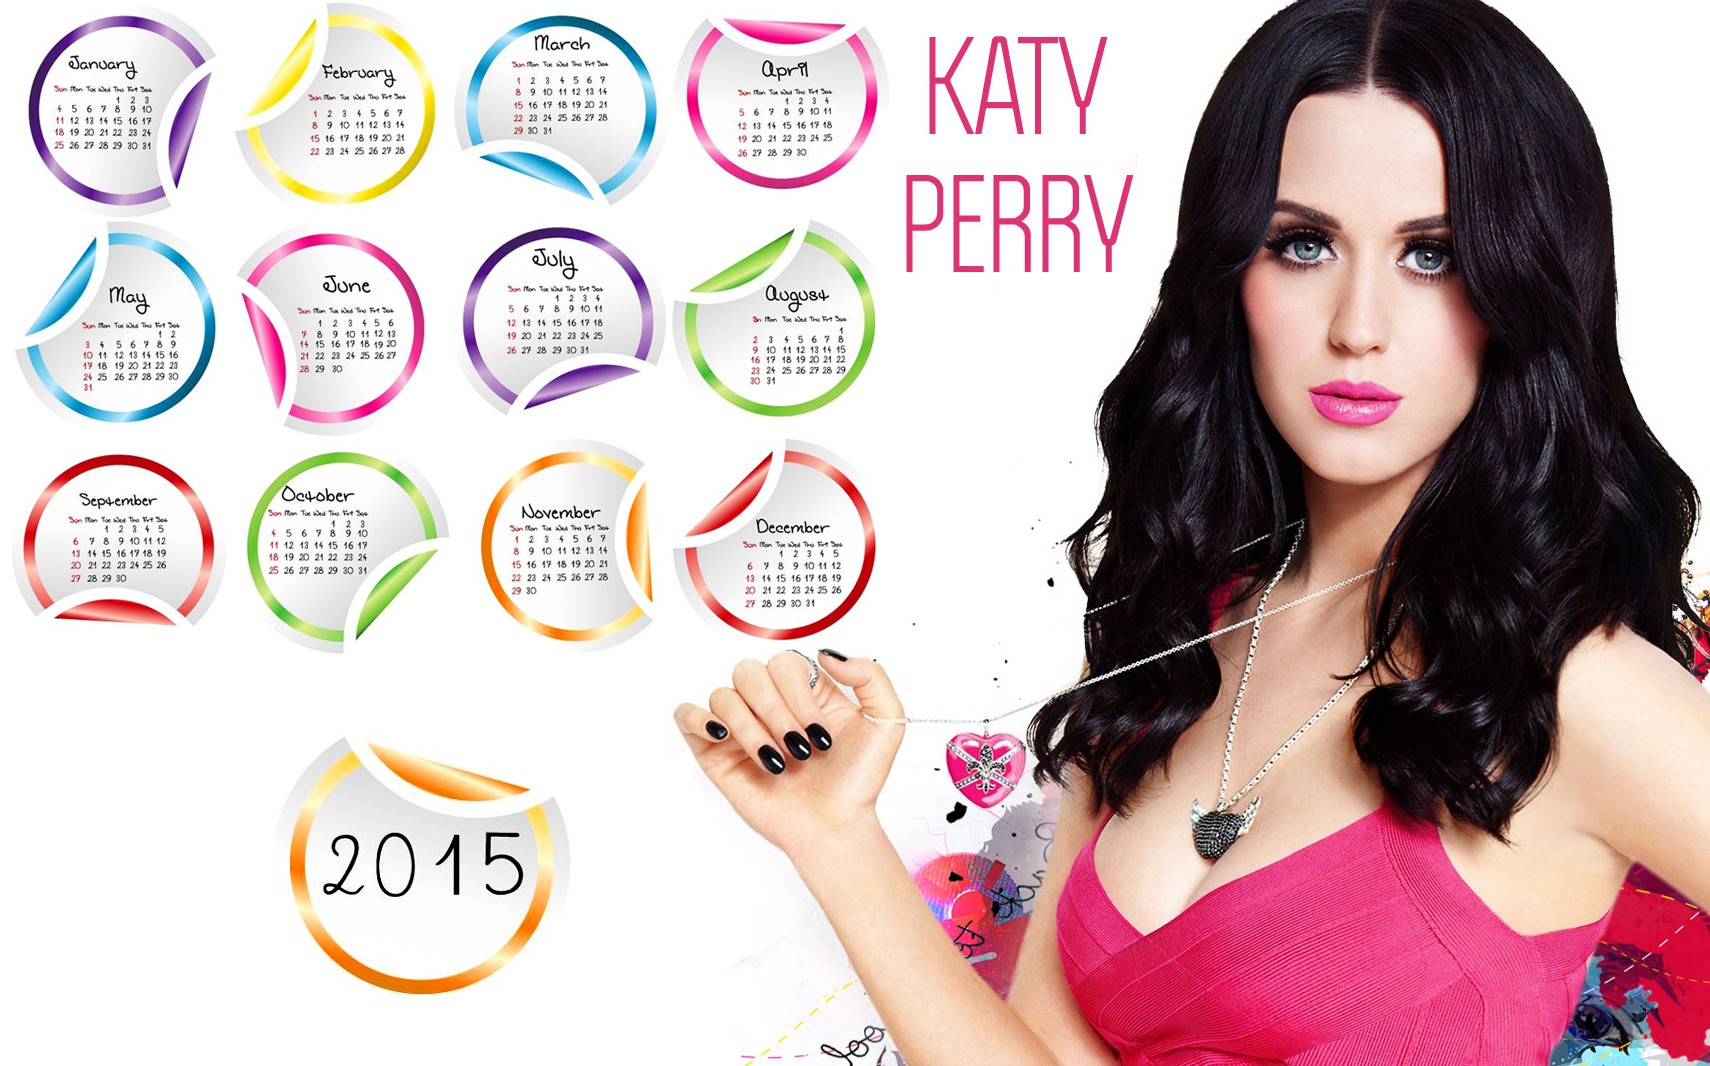 katy perry long hair wallpaper 2015 calendar